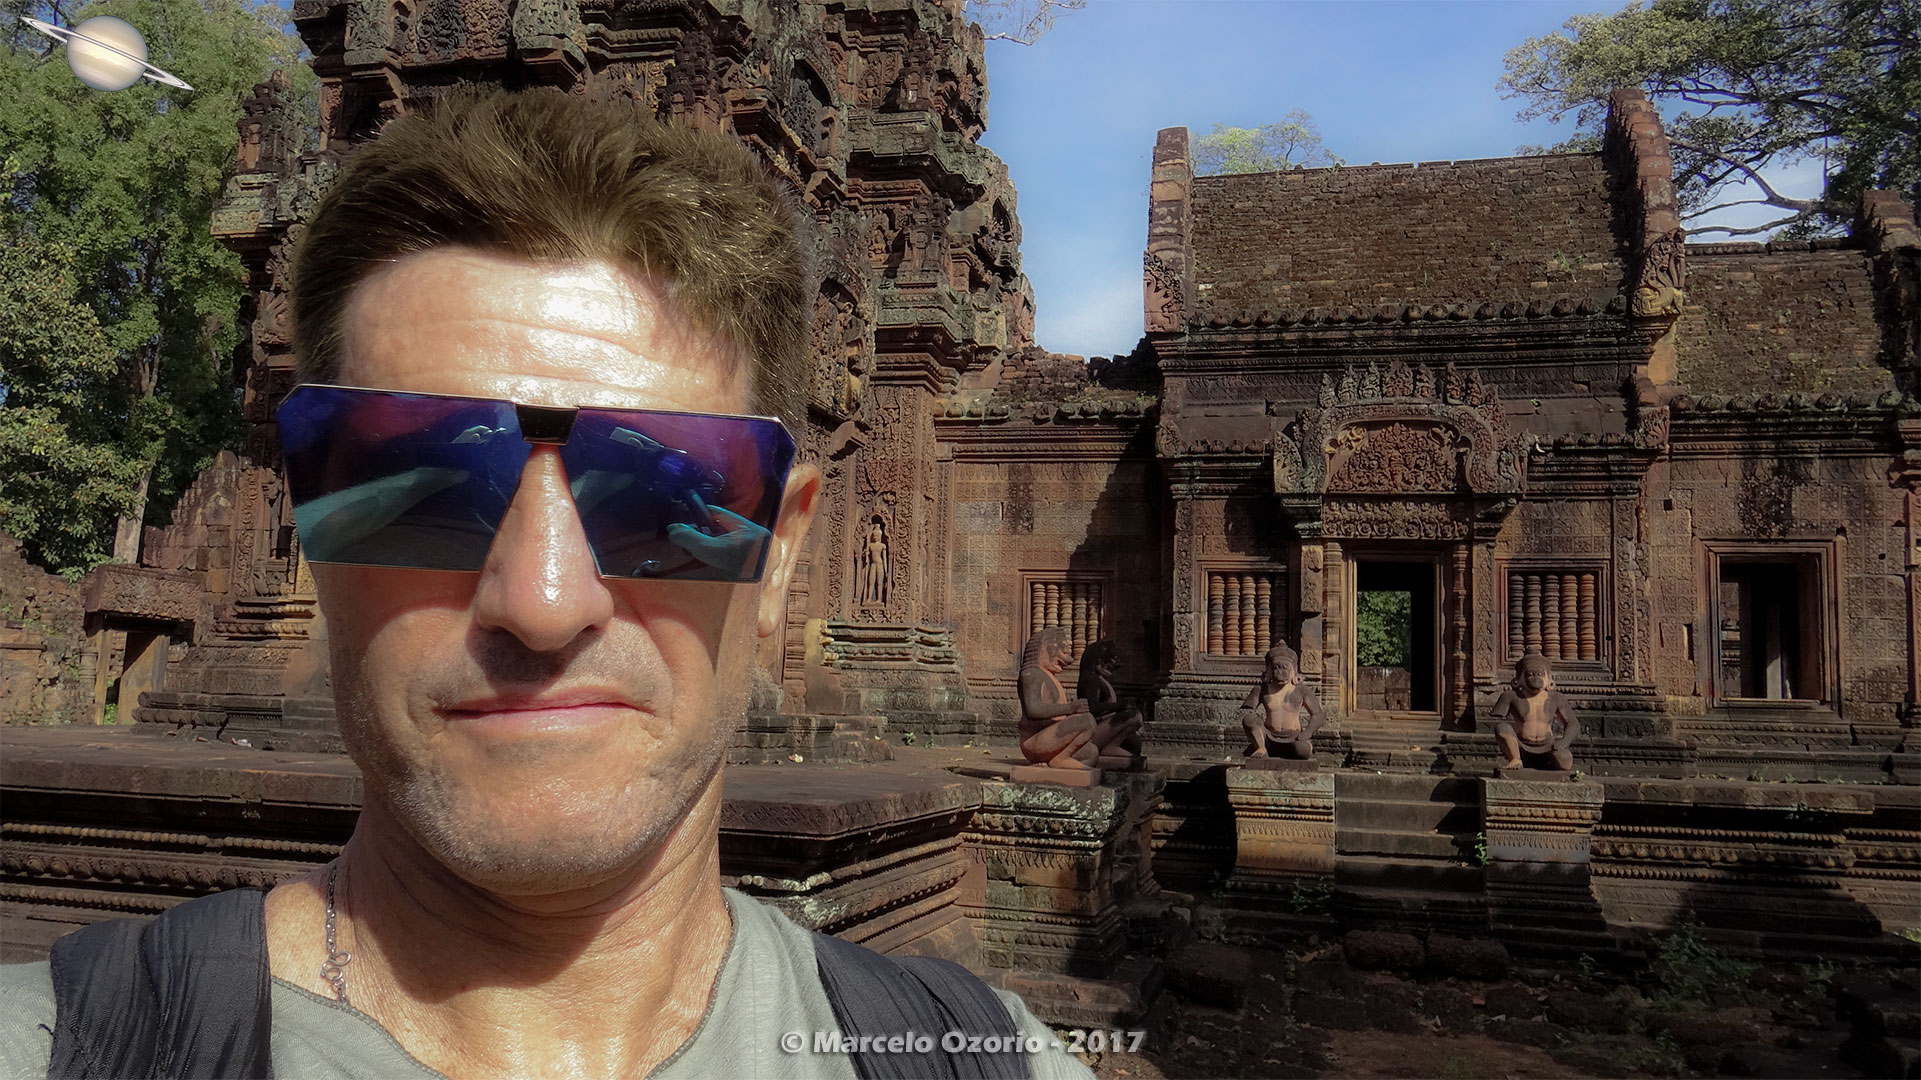 Marcelo Ozorio at Banteay Srei Temple - Siem Reap - Cambodia